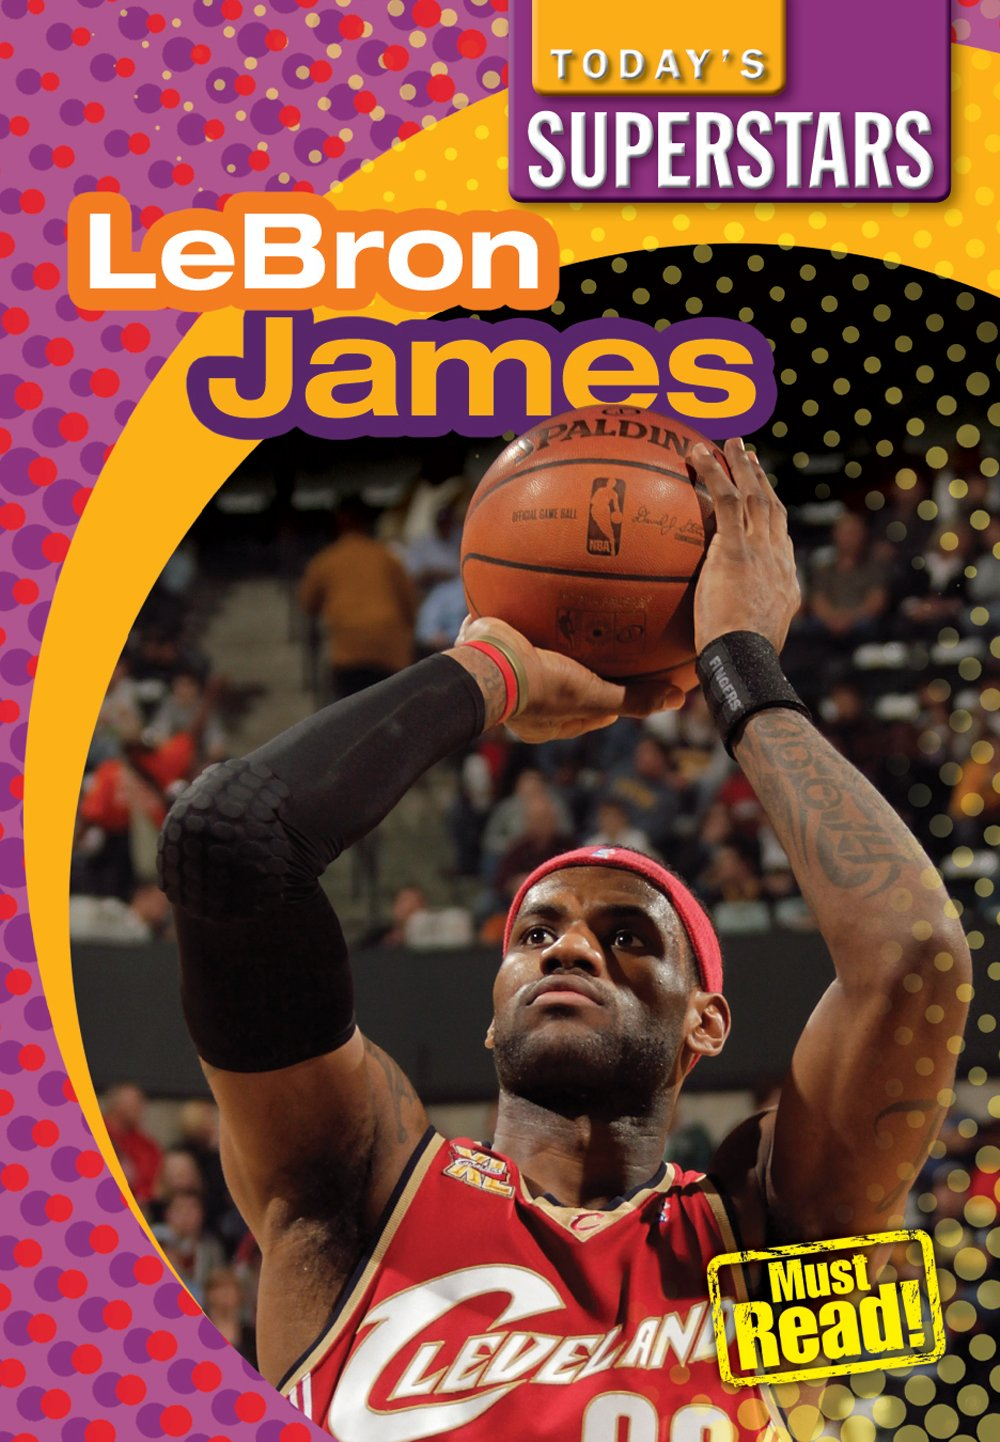 Lebron James (Today's Superstars)